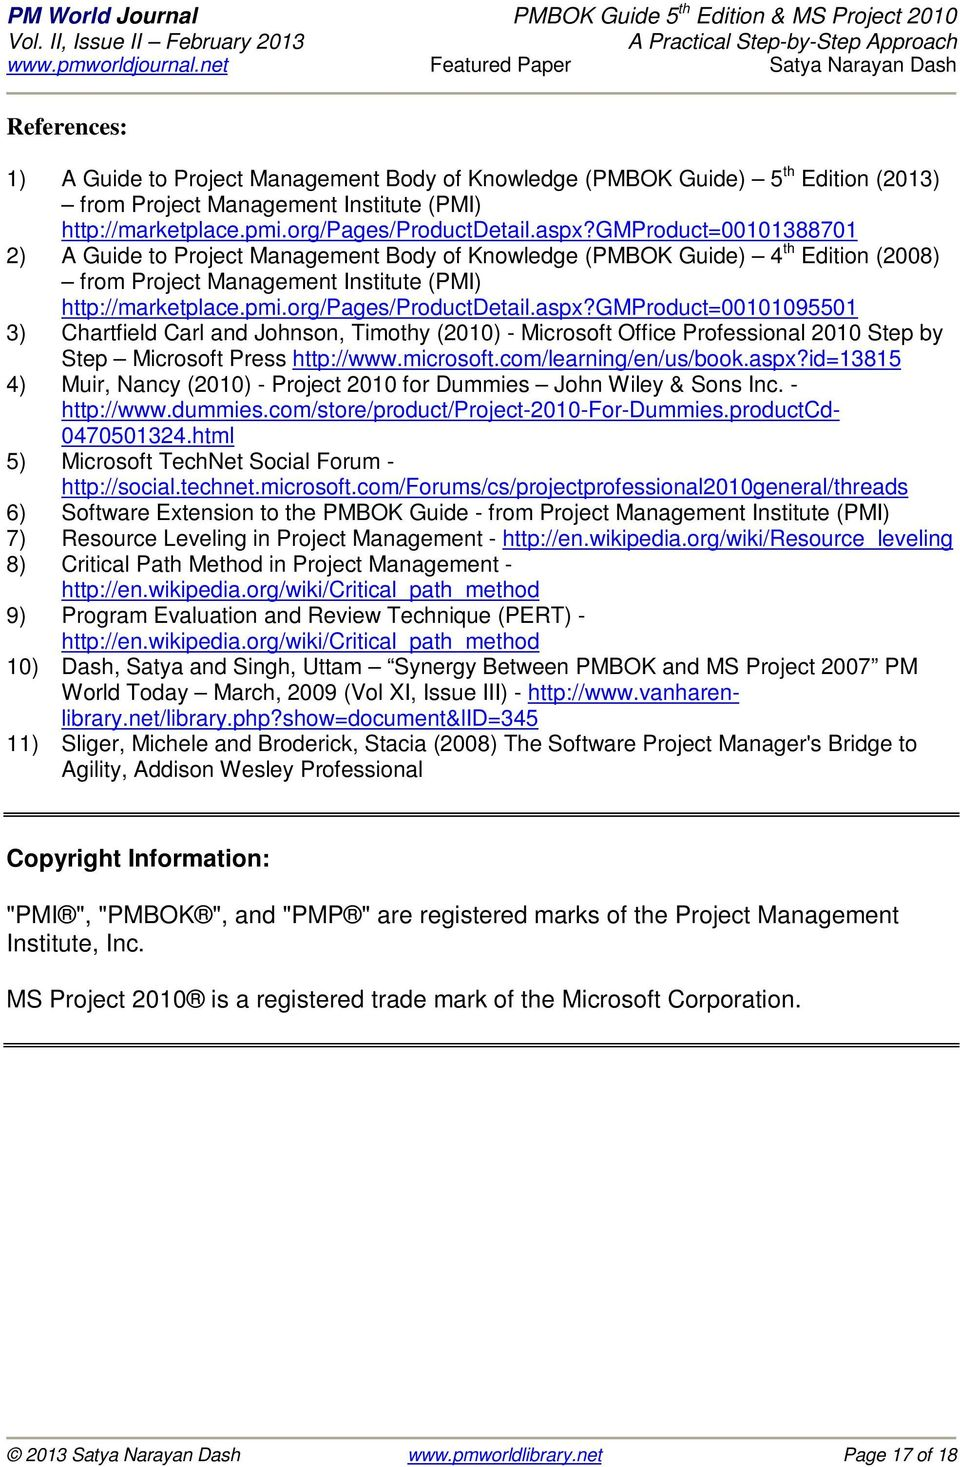 gmproduct=00101095501 3) Chartfield Carl and Johnson, Timothy (2010) - Microsoft Office Professional 2010 Step by Step Microsoft Press http://www.microsoft.com/learning/en/us/book.aspx?